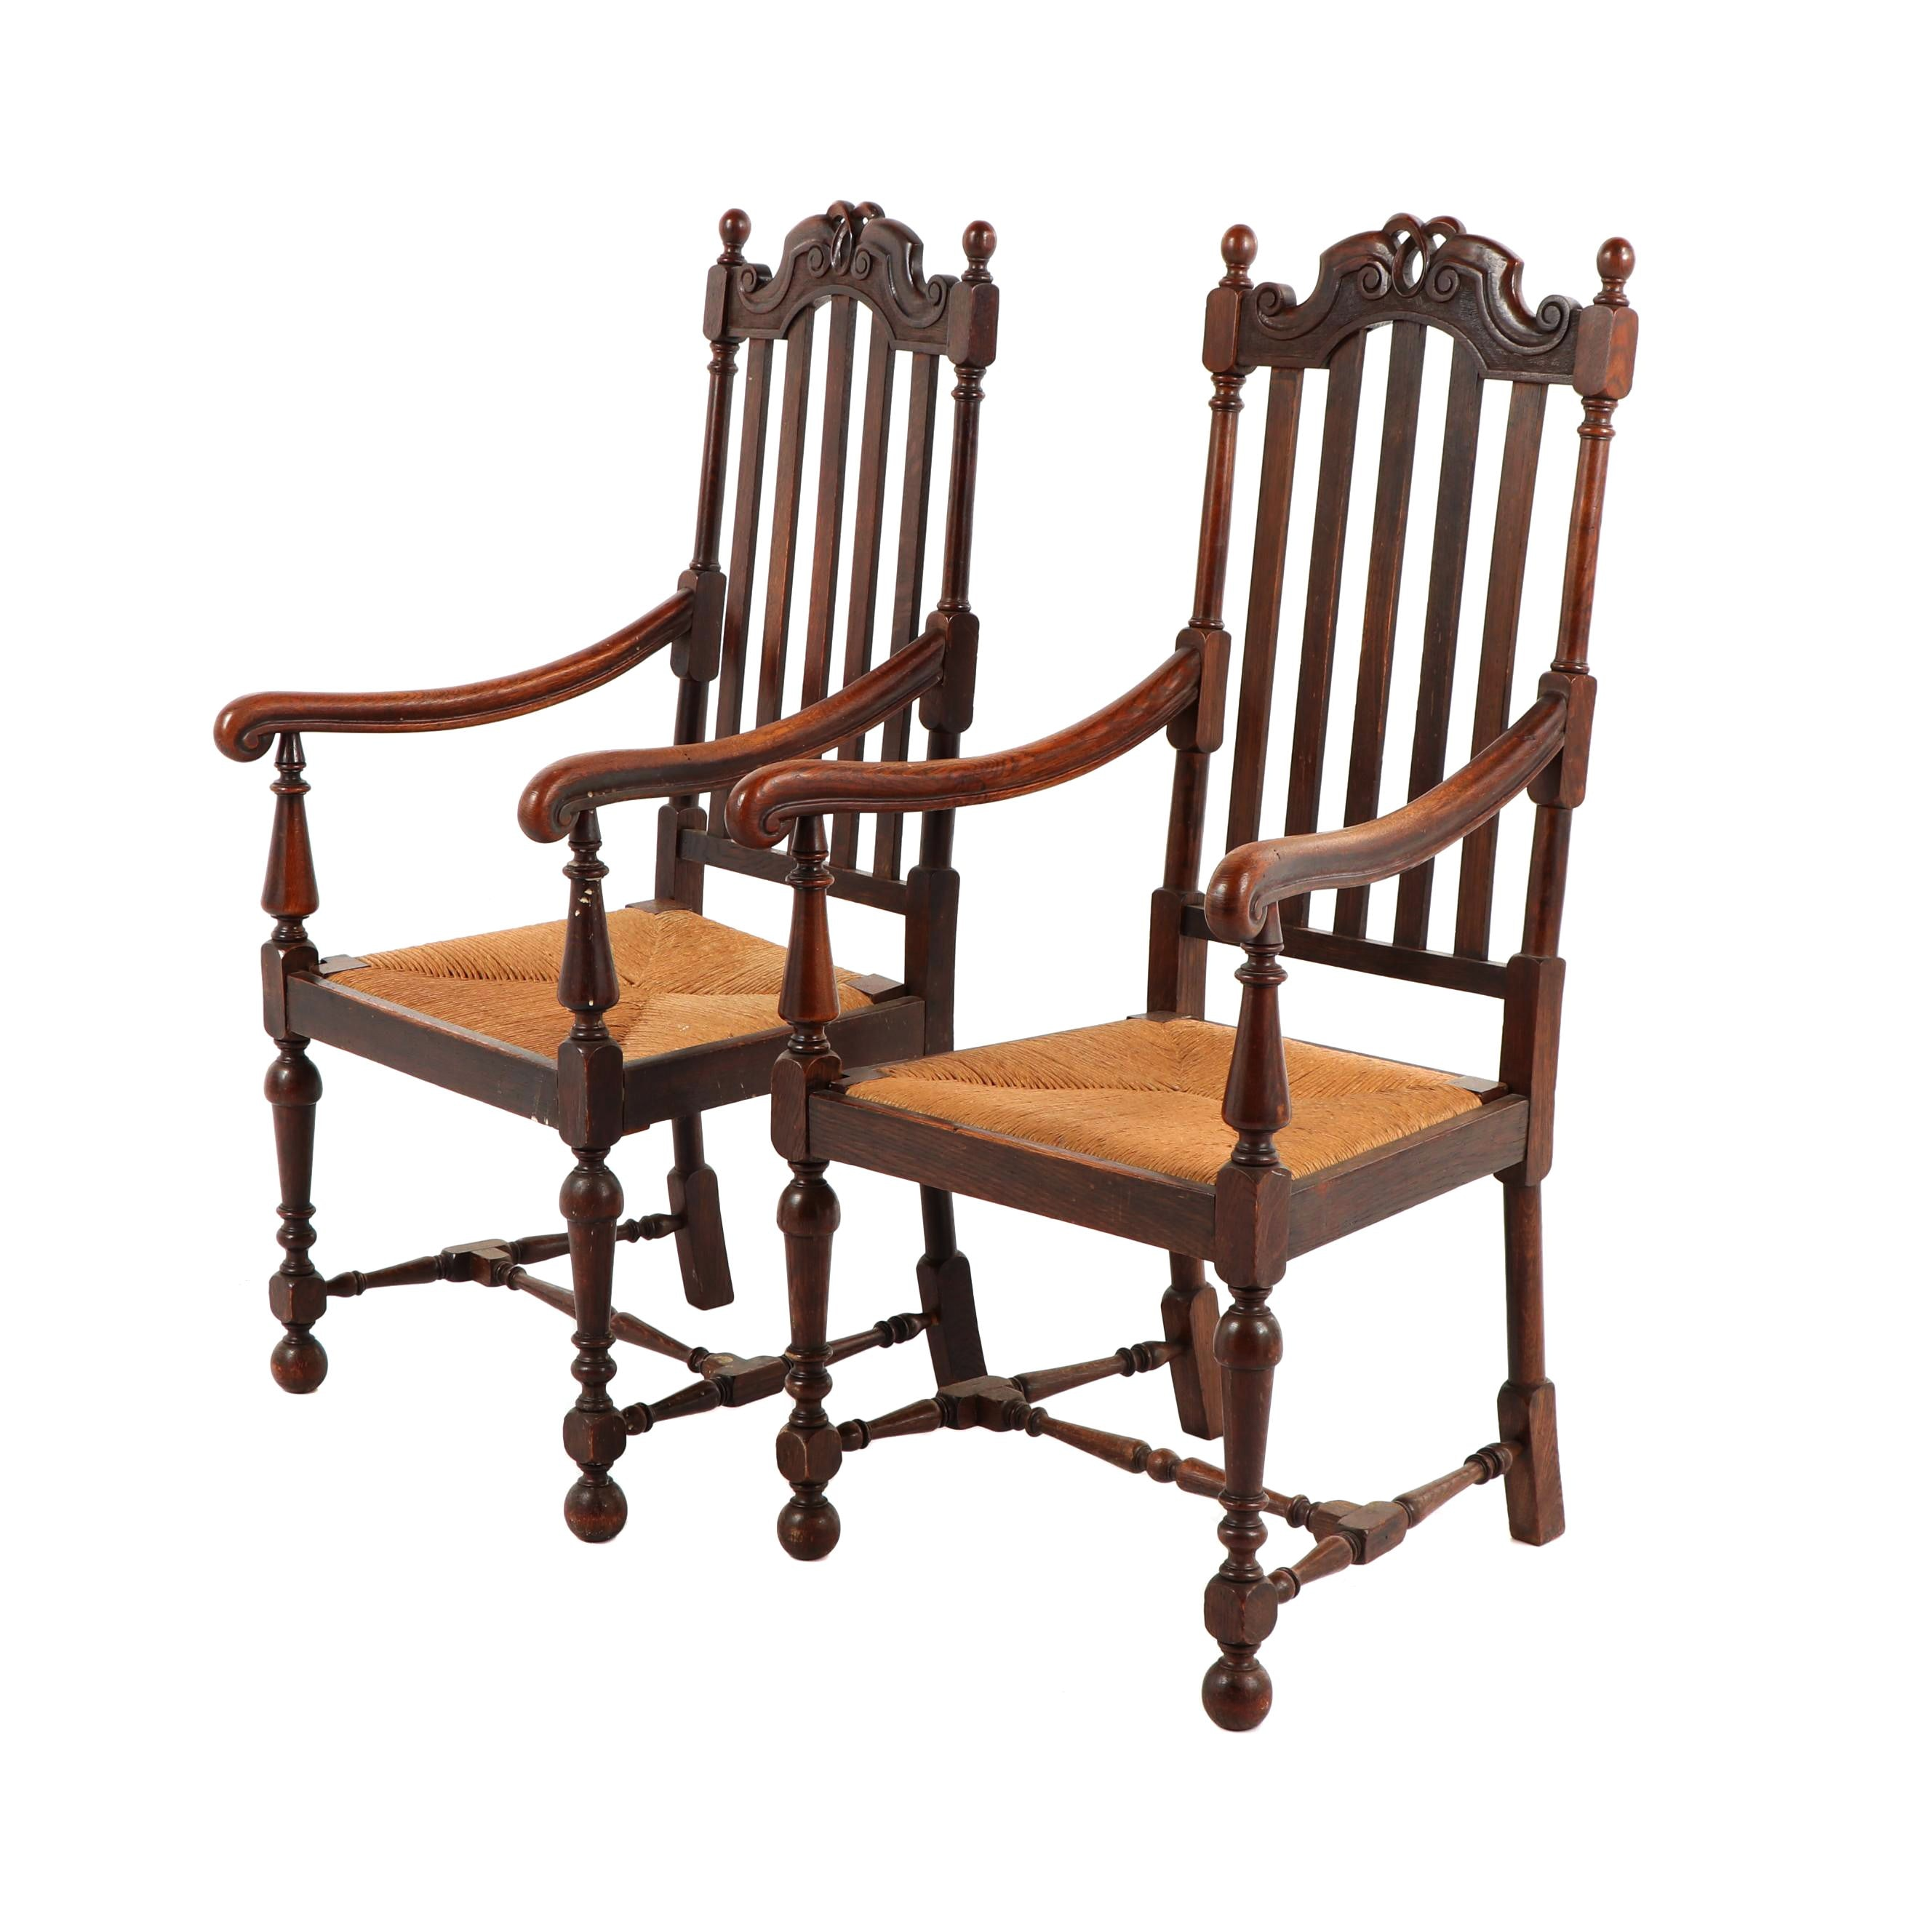 Jacobean Revival Style Armchairs with Rush Seats, Early 20th Century